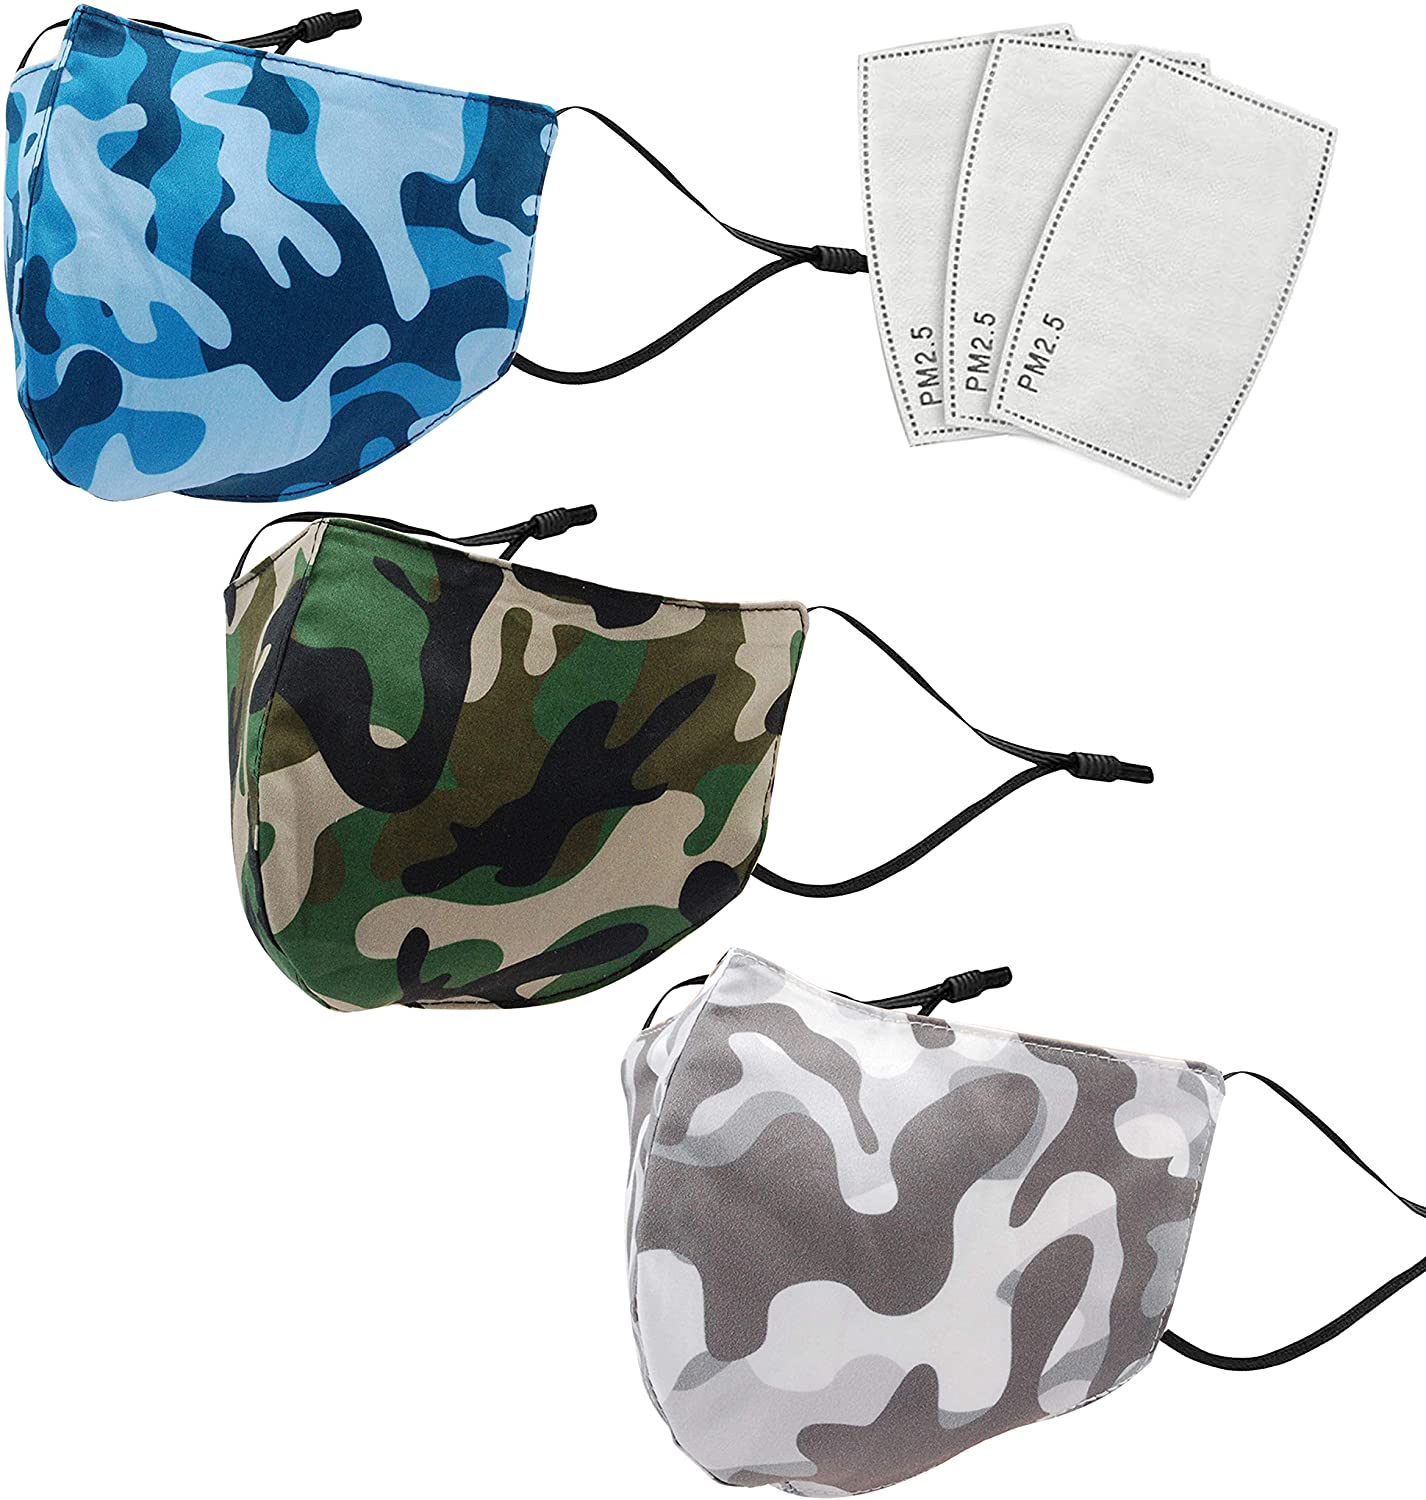 3-Pack Individually Packaged Fashion Resusable Face Mask with PM 2.5 Filter, Comfortable, Soft Elastic Adjustable Ear Loops, Washable and Reusable Mouth S-hield for Men and Women (Holiday Mixed 1)